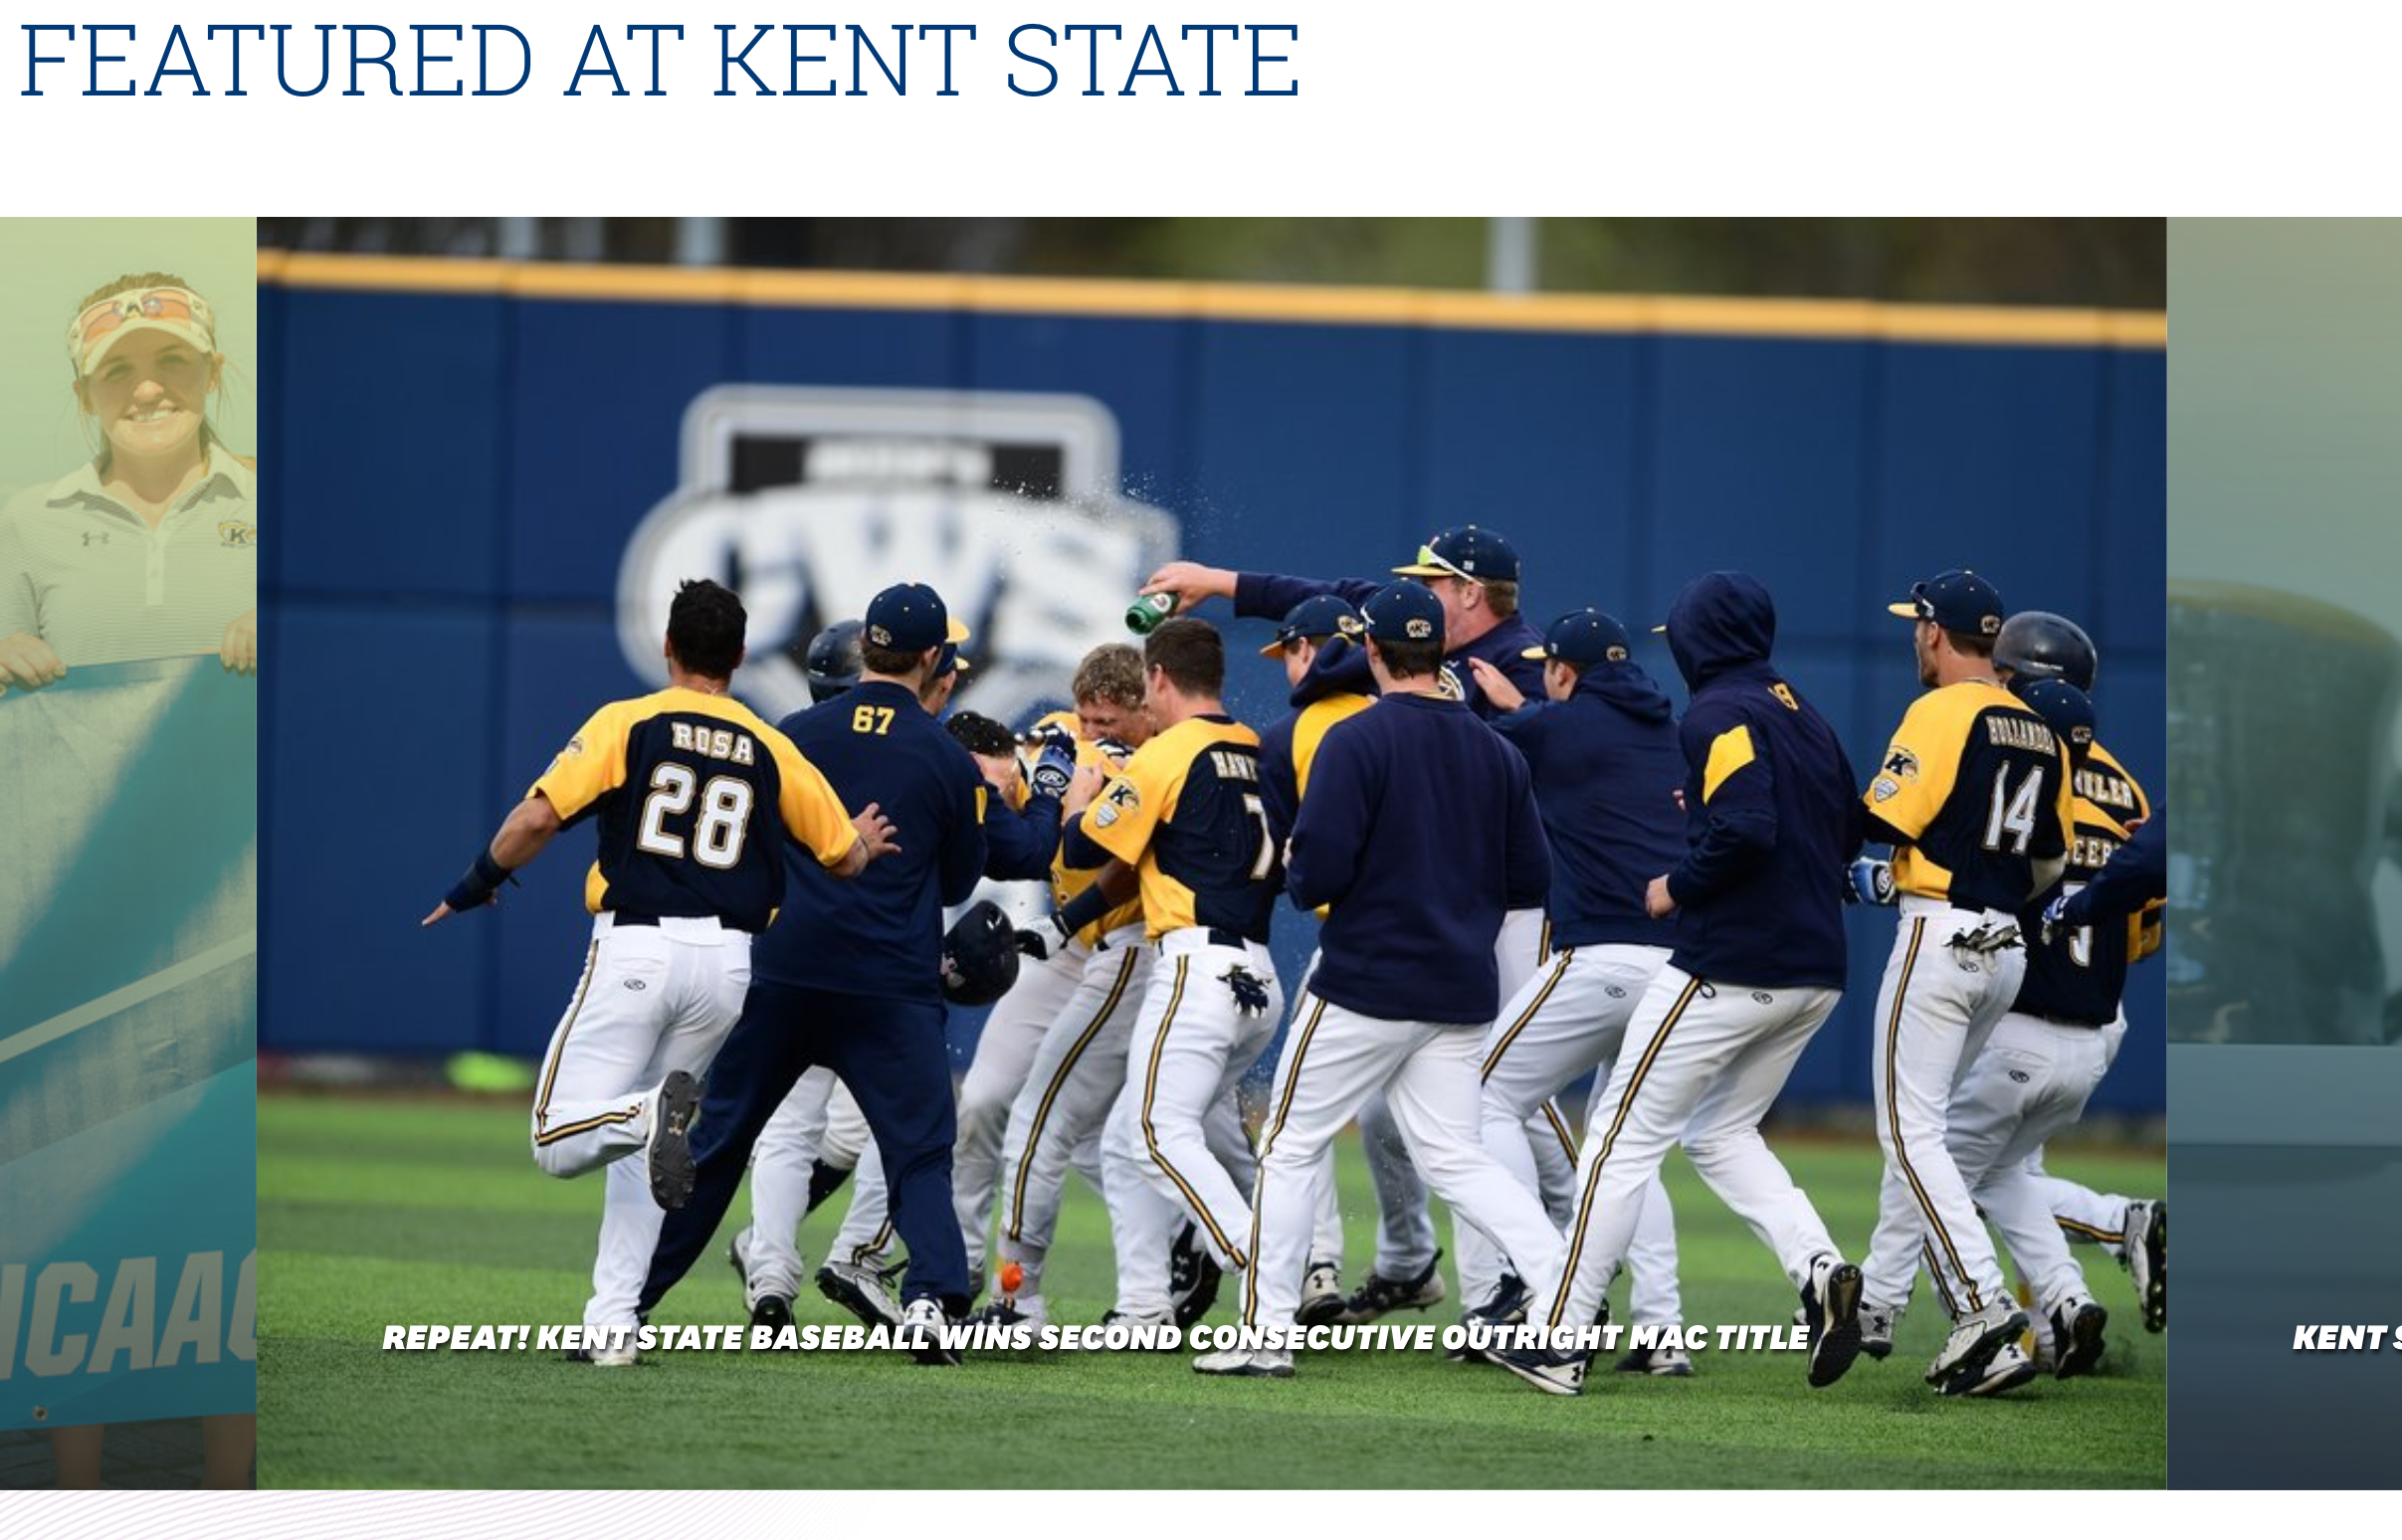 Example of Featured at Kent State image size rendering of 960 x 640 pixels.